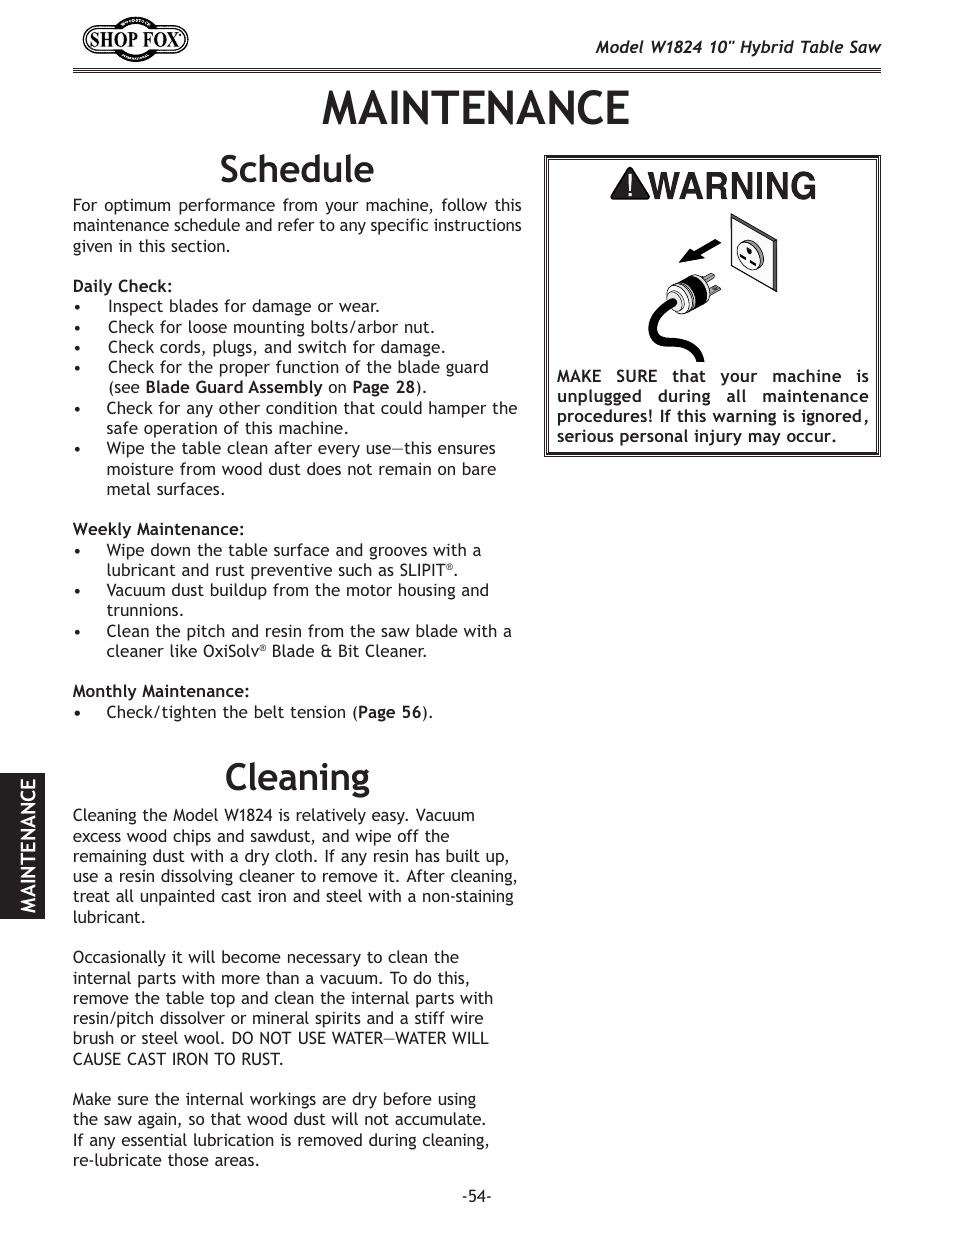 Maintenance, Cleaning, Schedule | Woodstock SHOP FOX W1824 User Manual |  Page 56 /